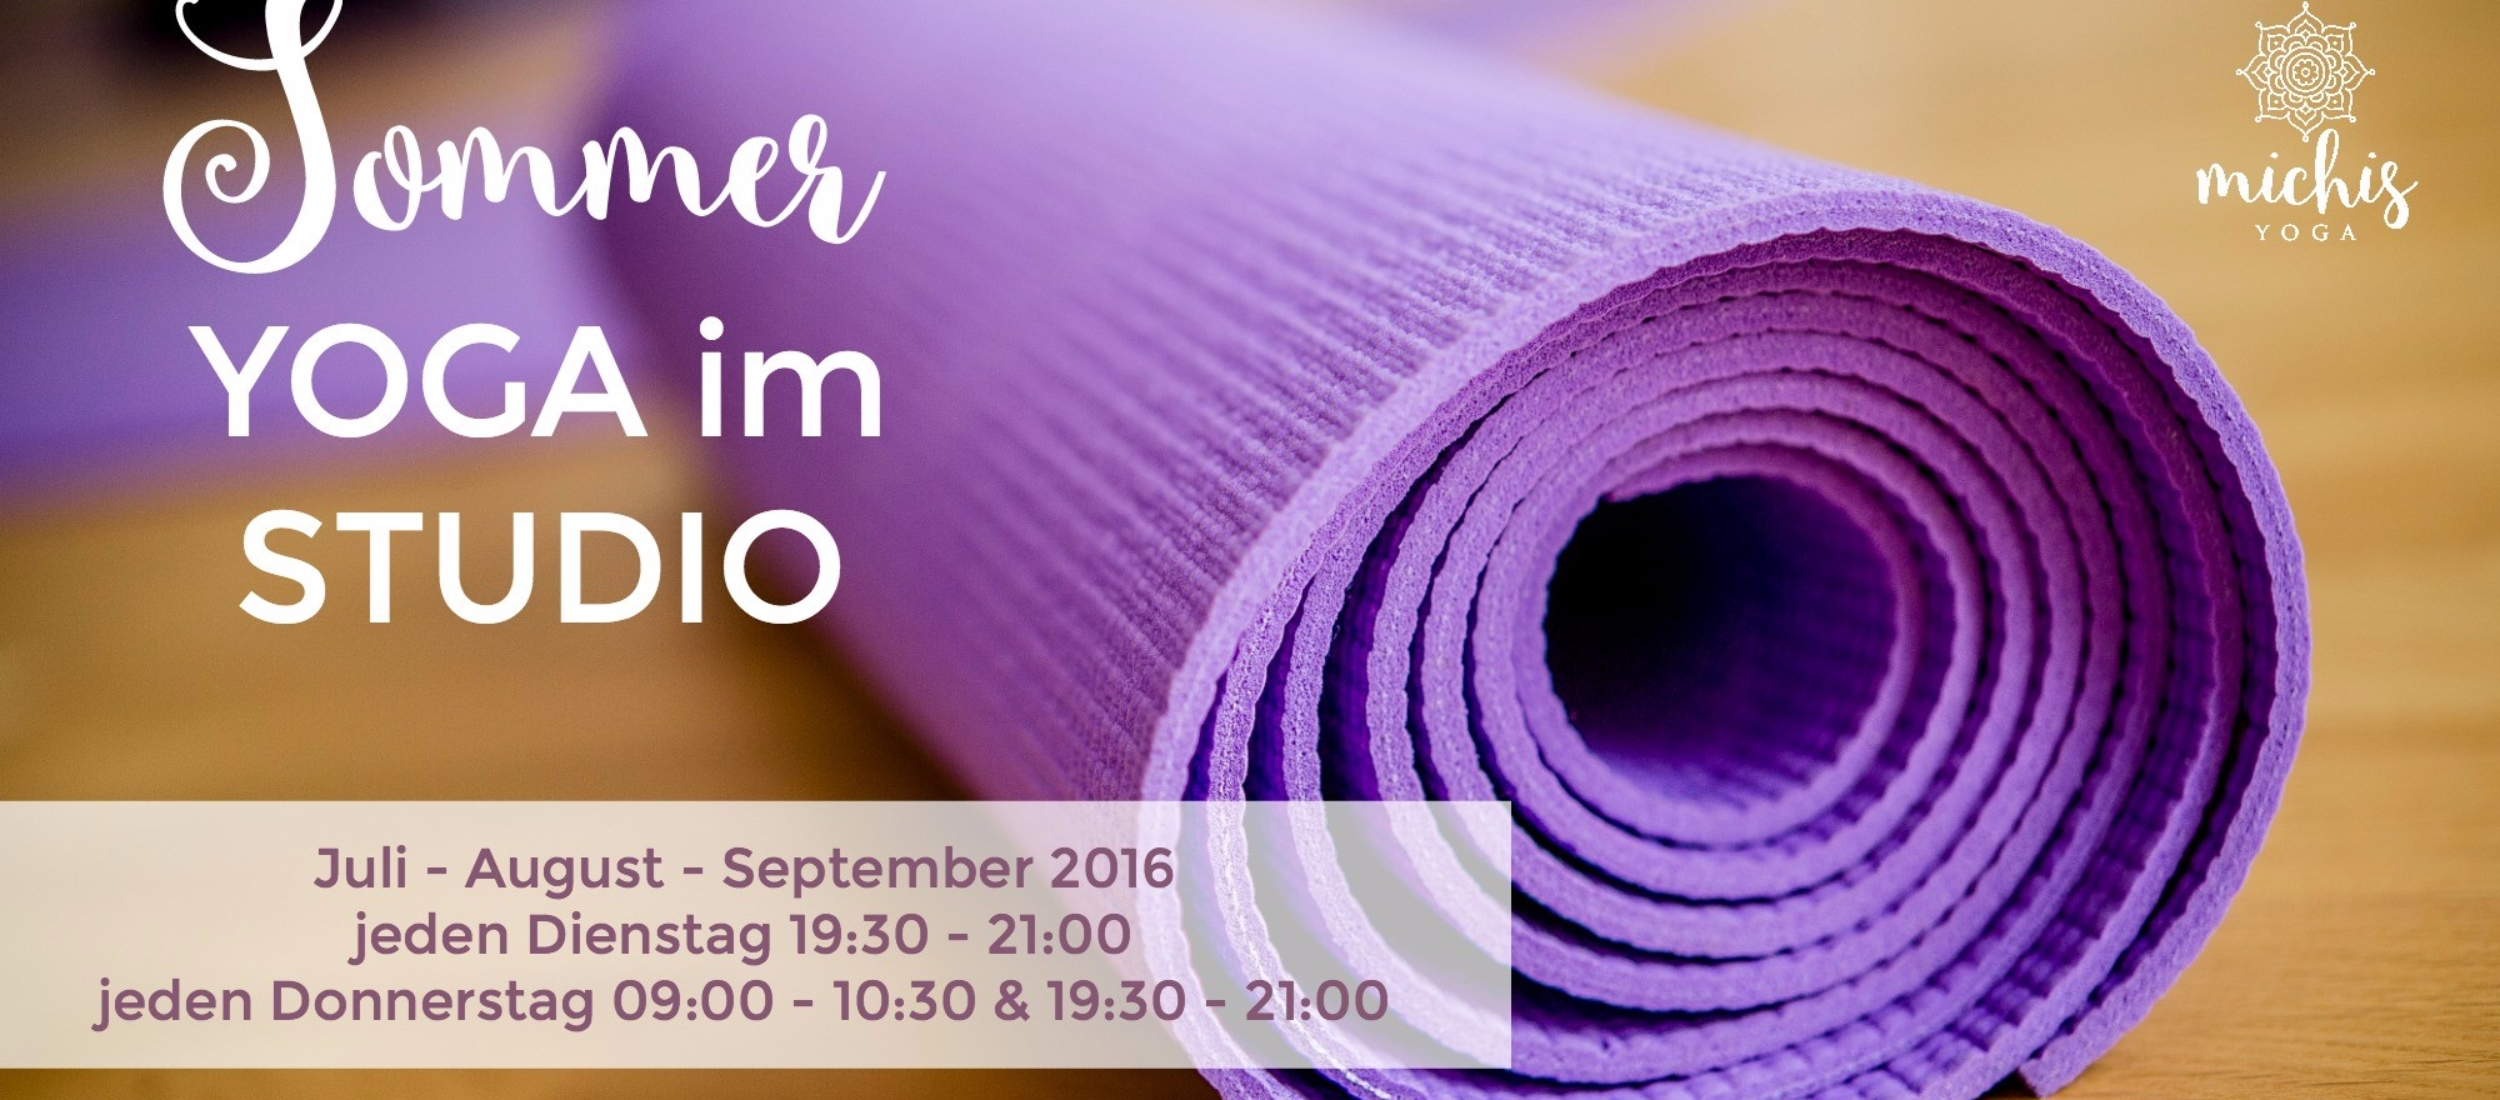 sommer yoga studio header